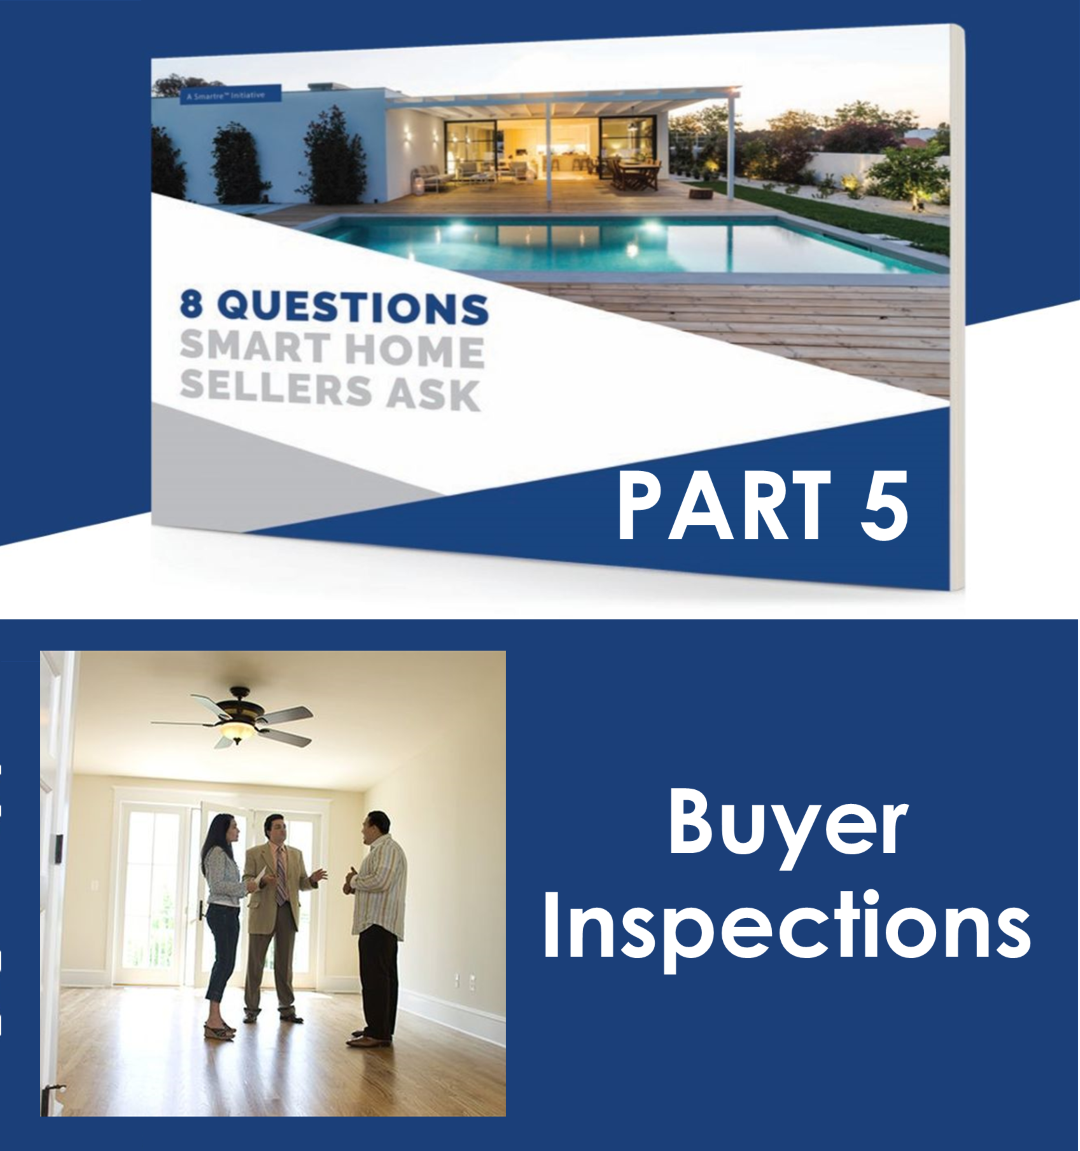 """8 QUESTIONS SMART HOME SELLERS ASK – QUESTION #5. """"HOW DO YOUR BUYER INSPECTIONS IMPACT YOUR NEGOTIATION STRATEGY?"""""""